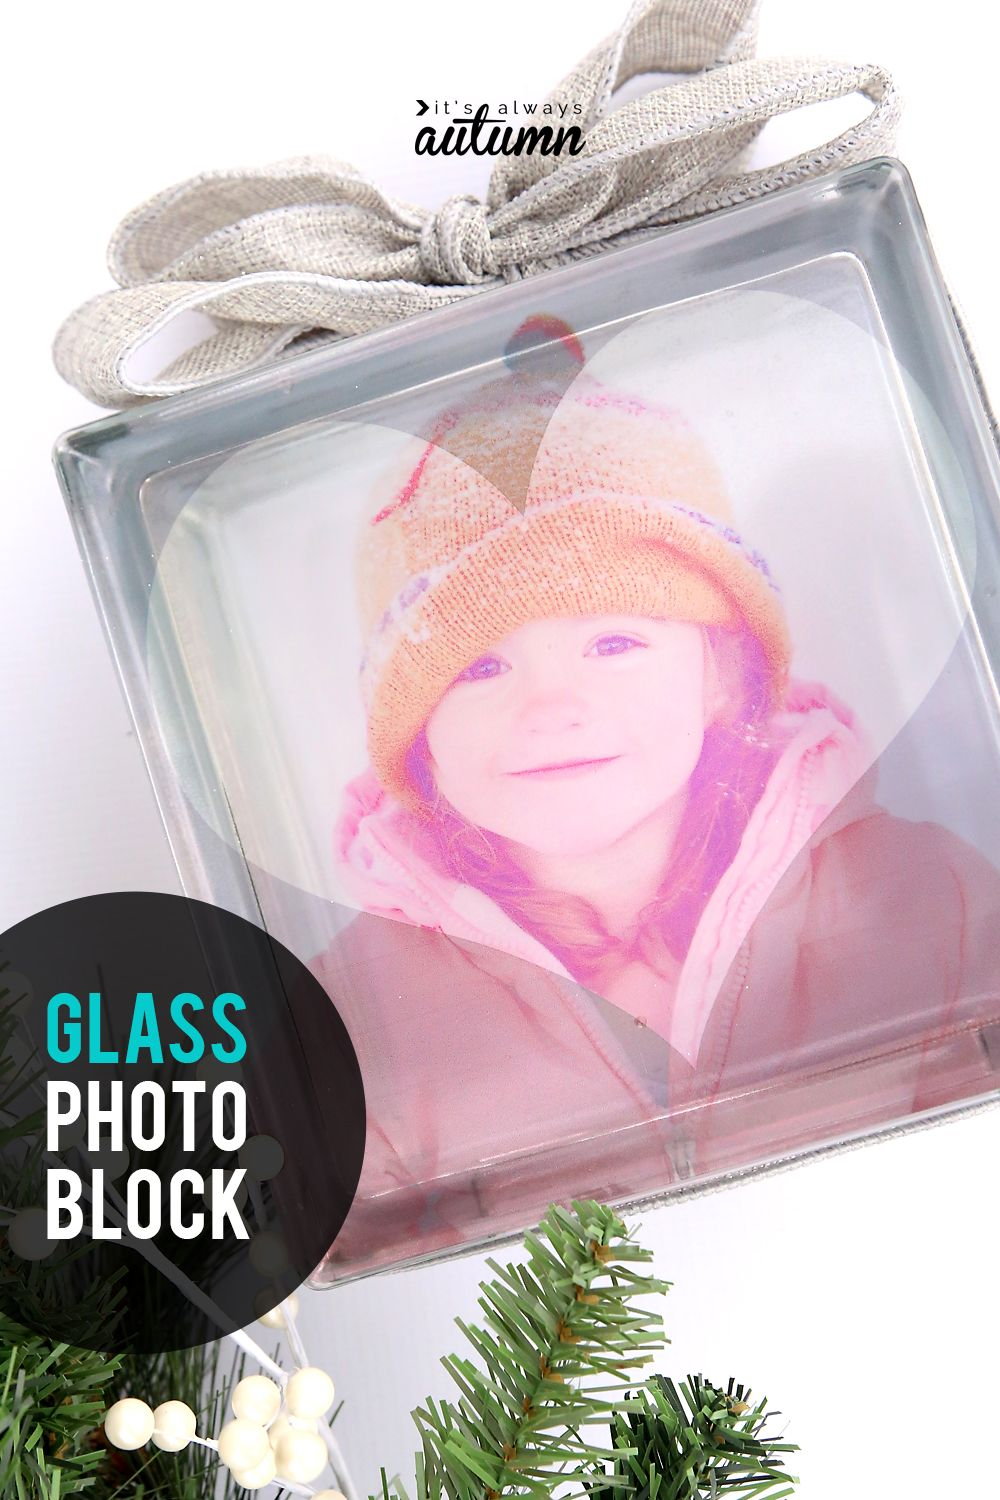 Learn how to make a beautiful glass photo block in 10 minutes! Click through for easy instructions. #itsalwaysautumn #photoblock #glassphotoblock #photocrafts